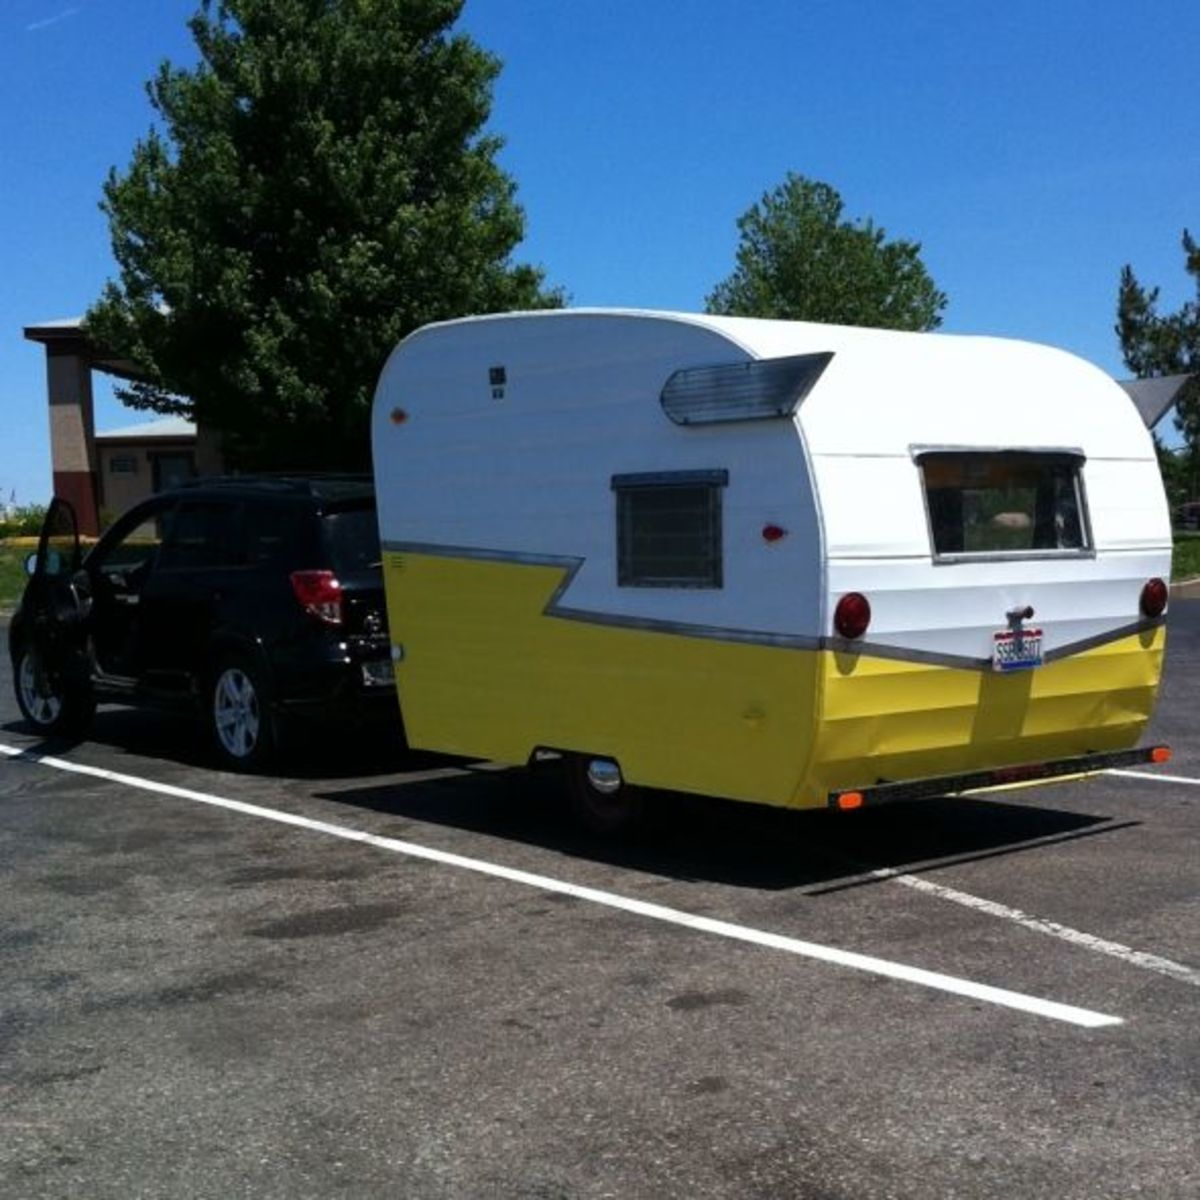 A Photo Tour of the Vintage Shasta Compact Travel Trailer